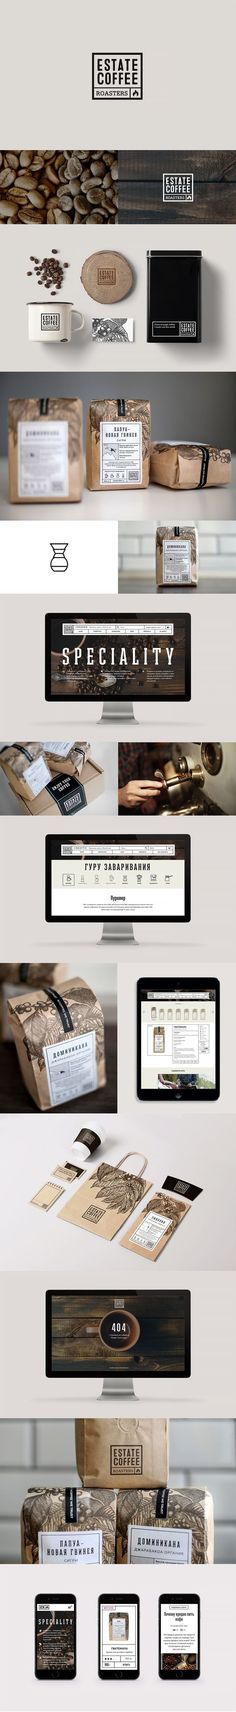 Estate Coffee Roasters on Behance | Fivestar Branding – Design and Branding Agency & Inspiration Gallery